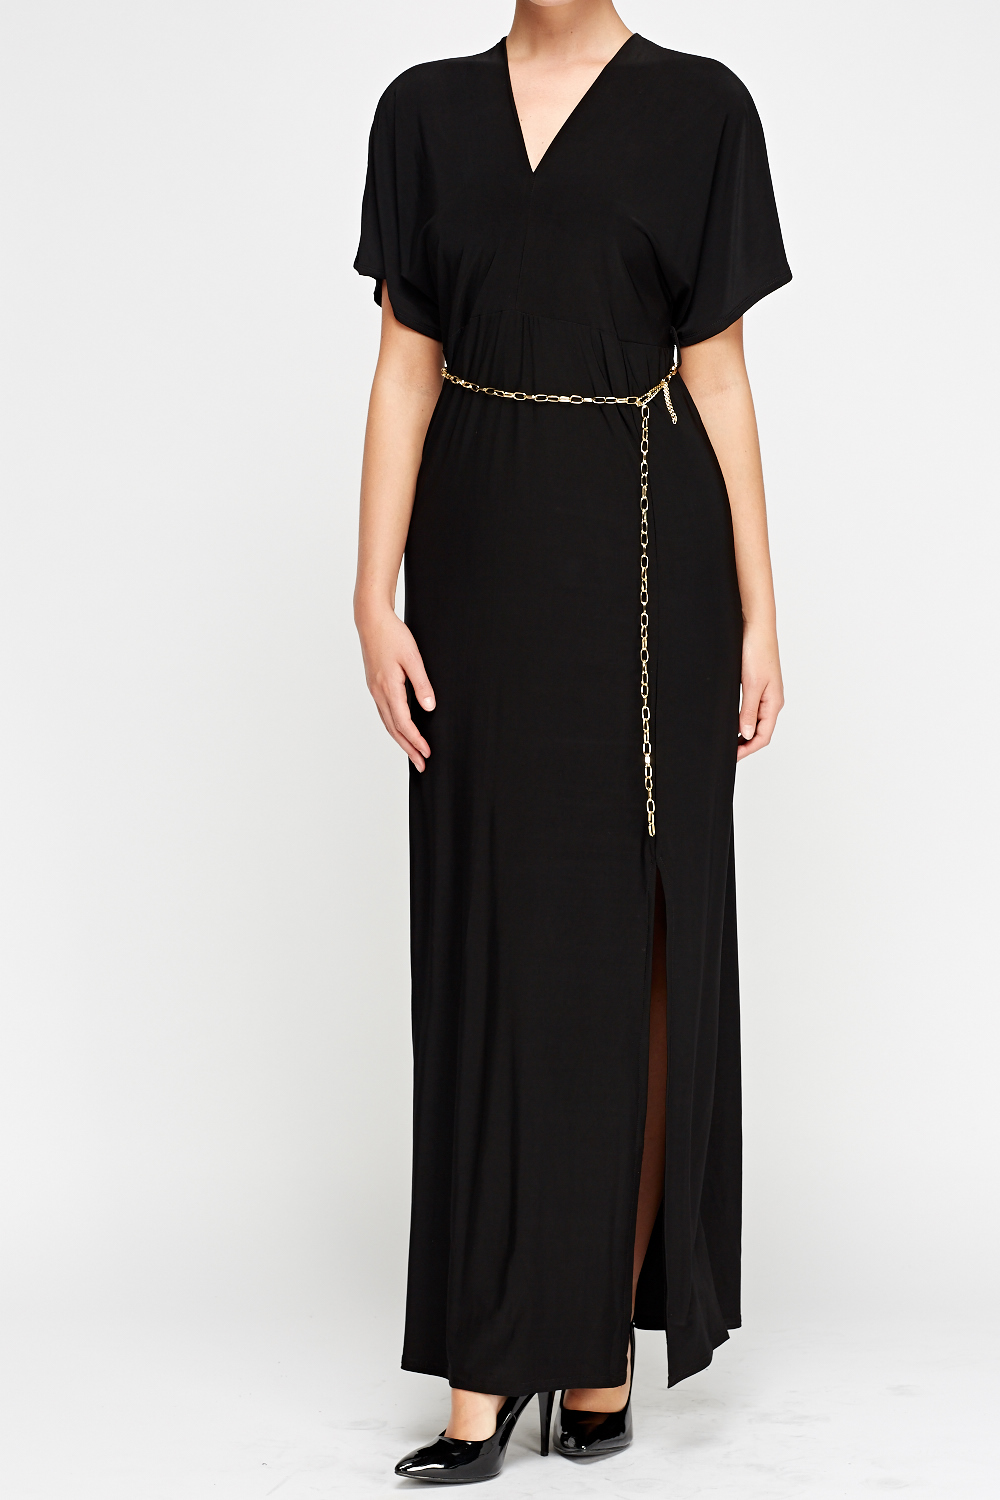 chain belted black maxi dress just 163 5